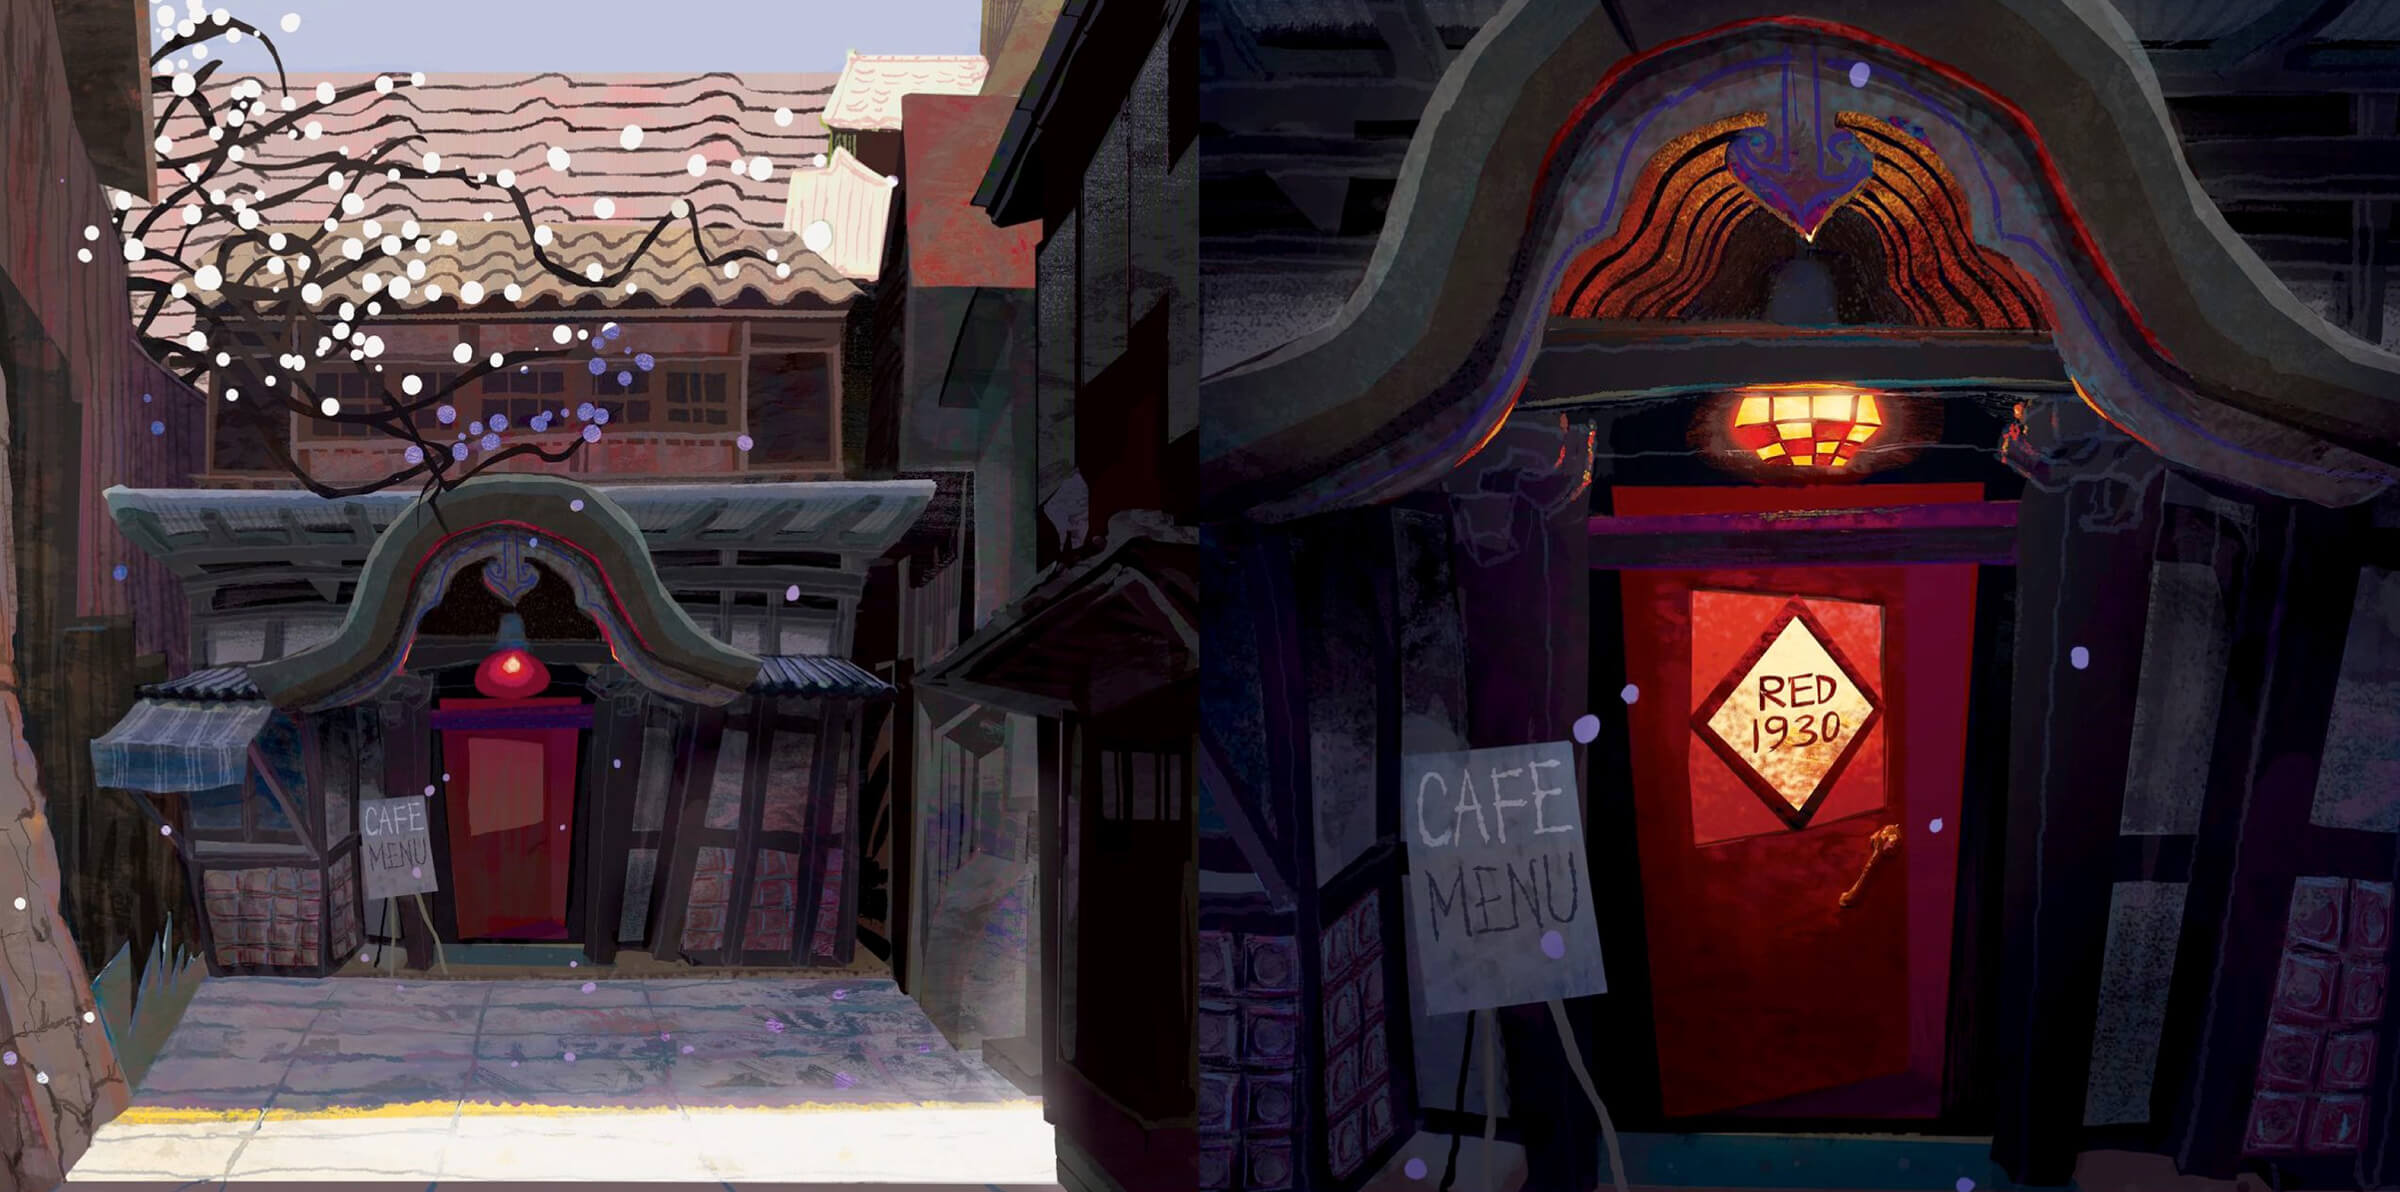 digital paintings of the red 1930 cafe door and menu during the day and at night